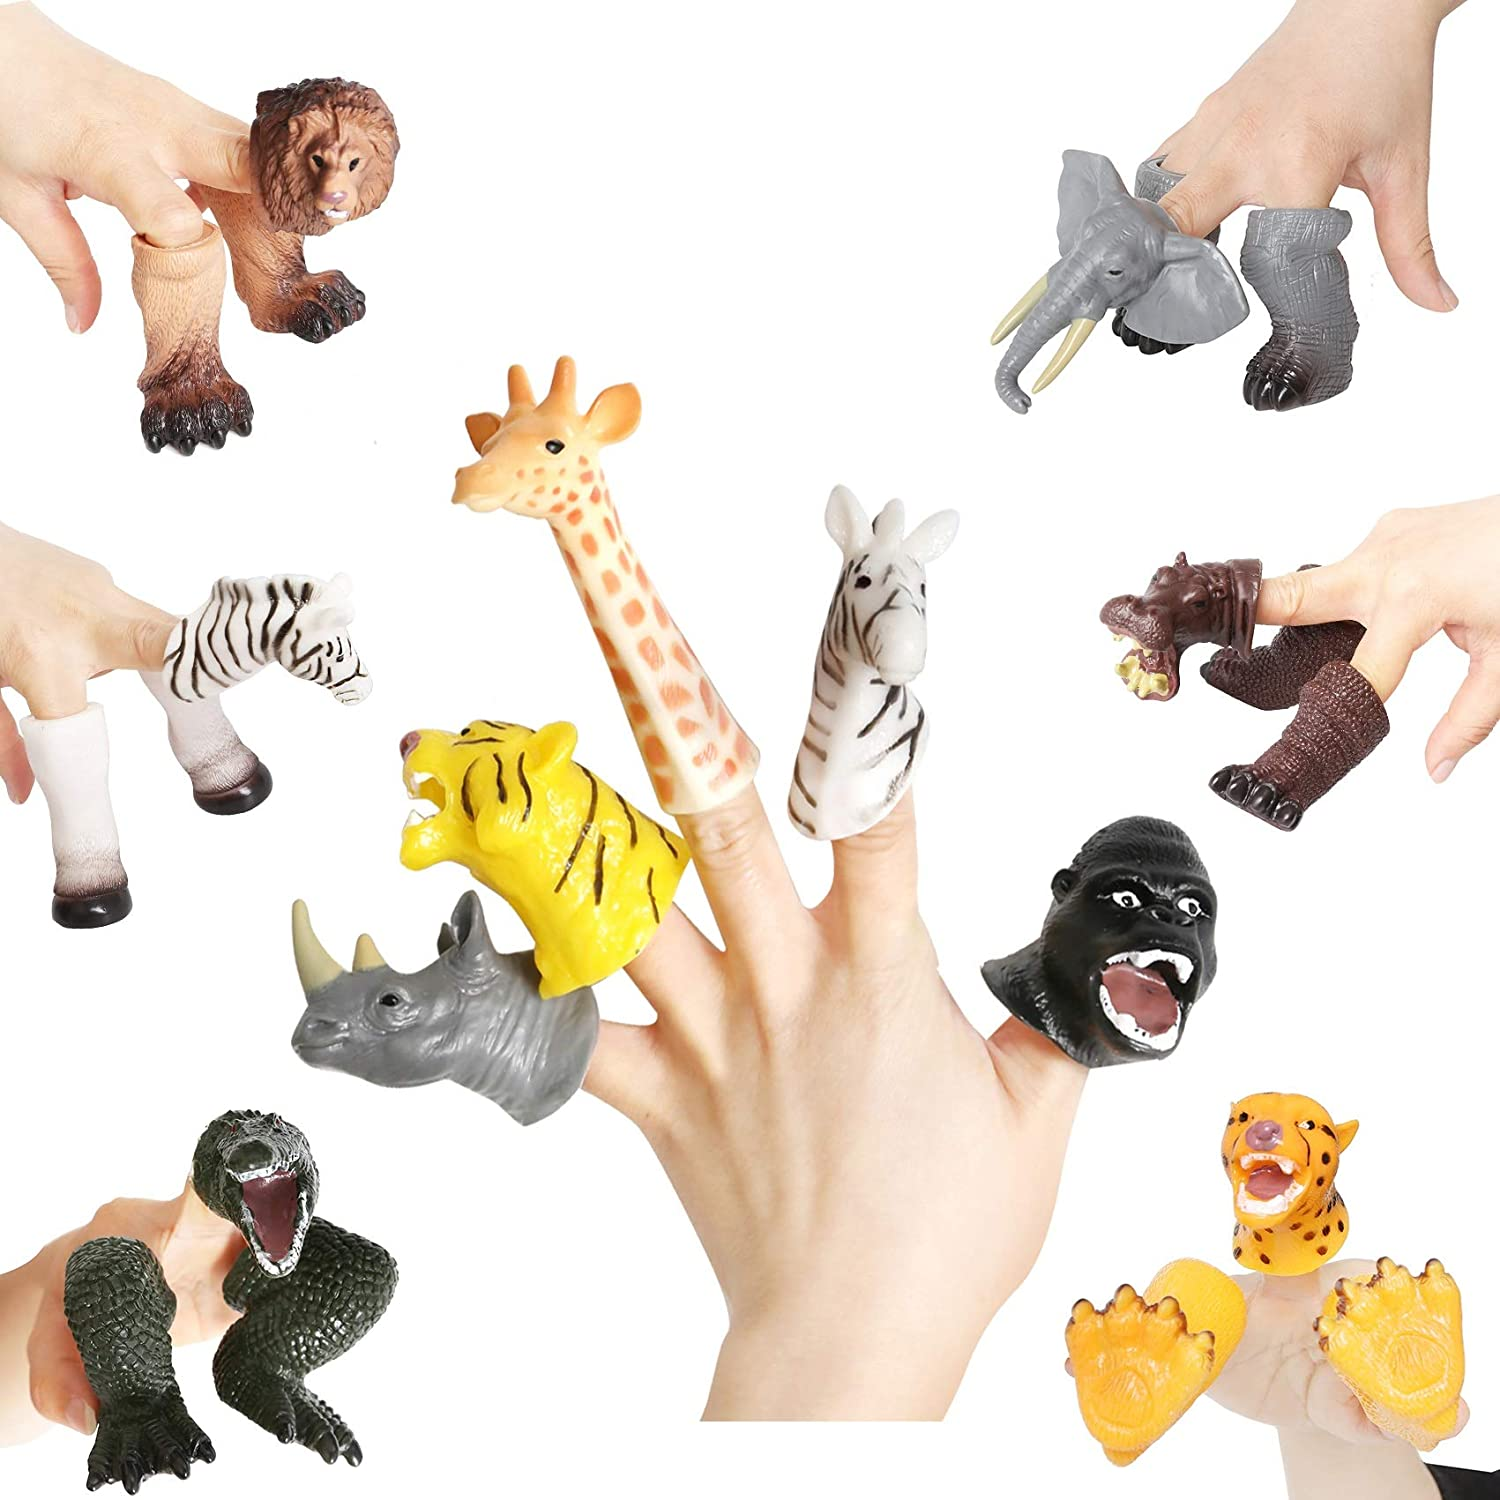 BBQ Star 10 PCs Rubber Animal Bath Finger Puppets for Kids Educational Story Time Gift Dinosaur Head Finger Toys for Party Favors Goodie Bags Fillers Classroom Prizes Pinata Fillers Type-1-10pcs